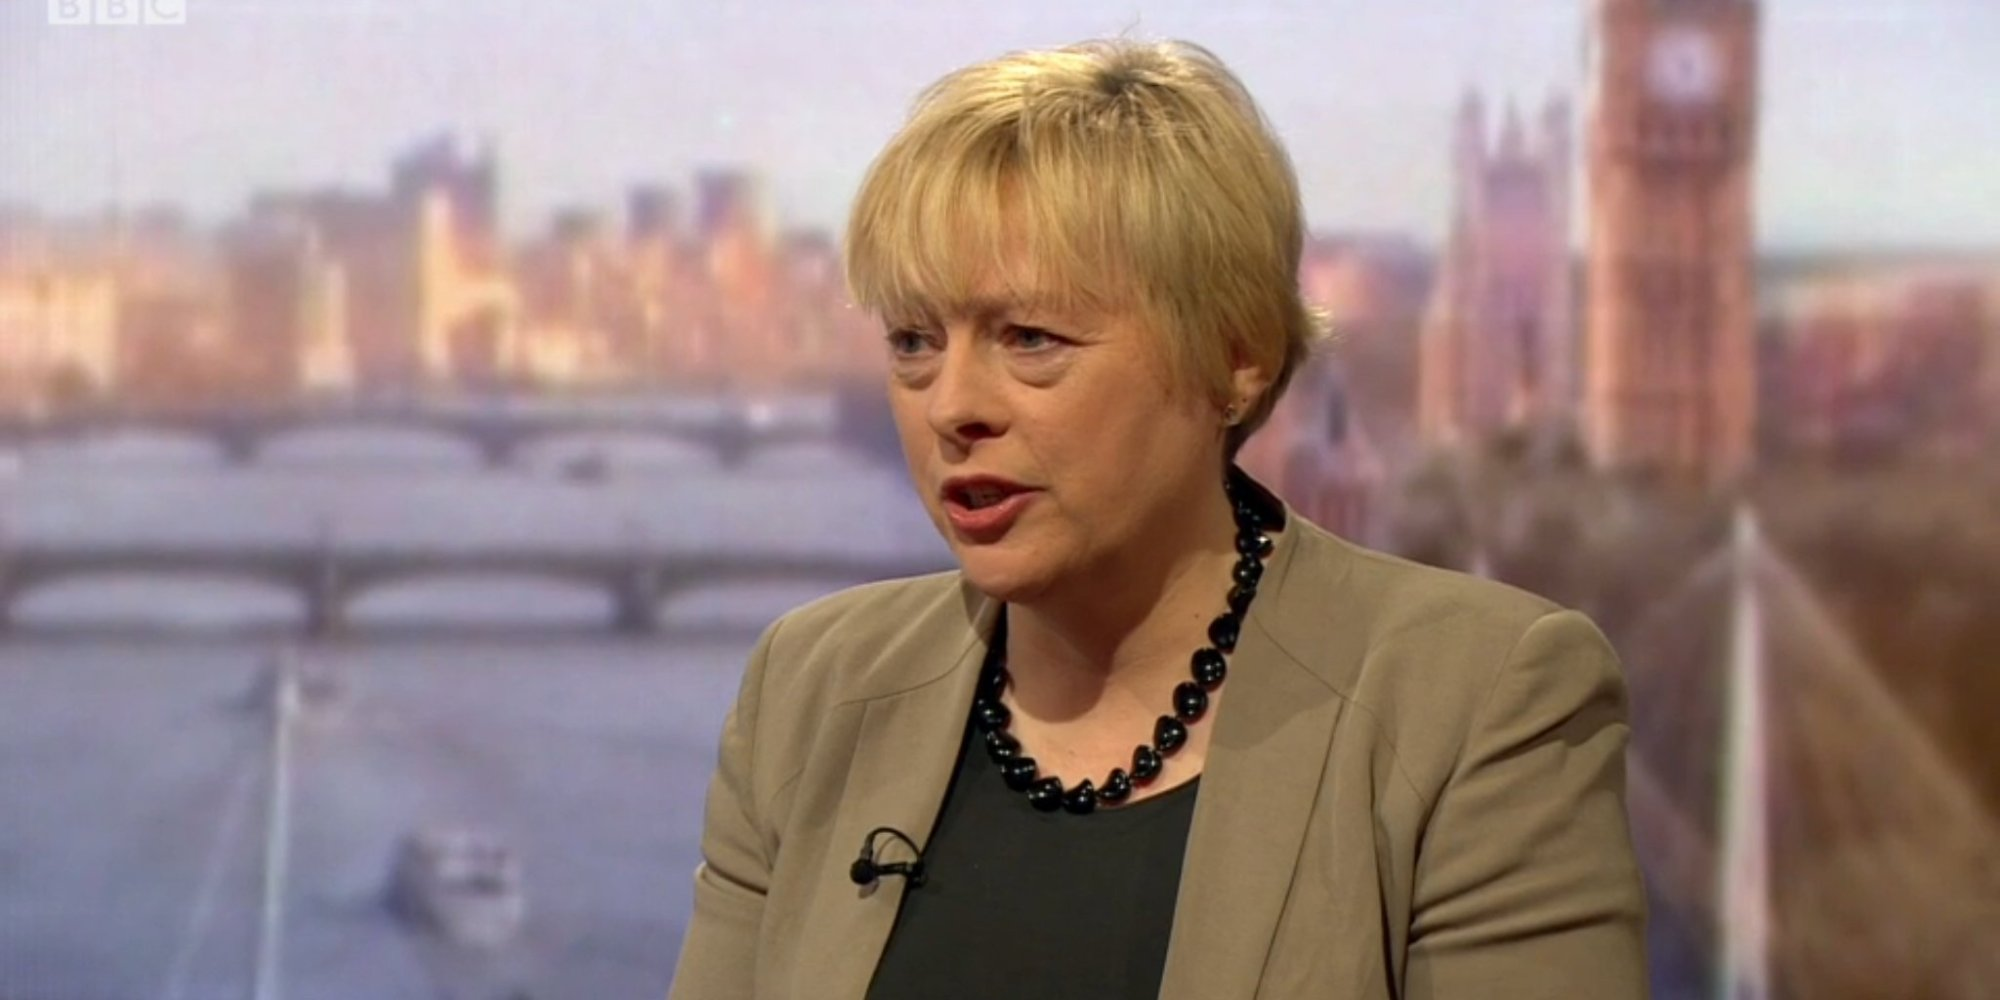 Angela Eagle, formerly the shadow business secretary, may emerge as Corbyn's challenger. (Facebook)